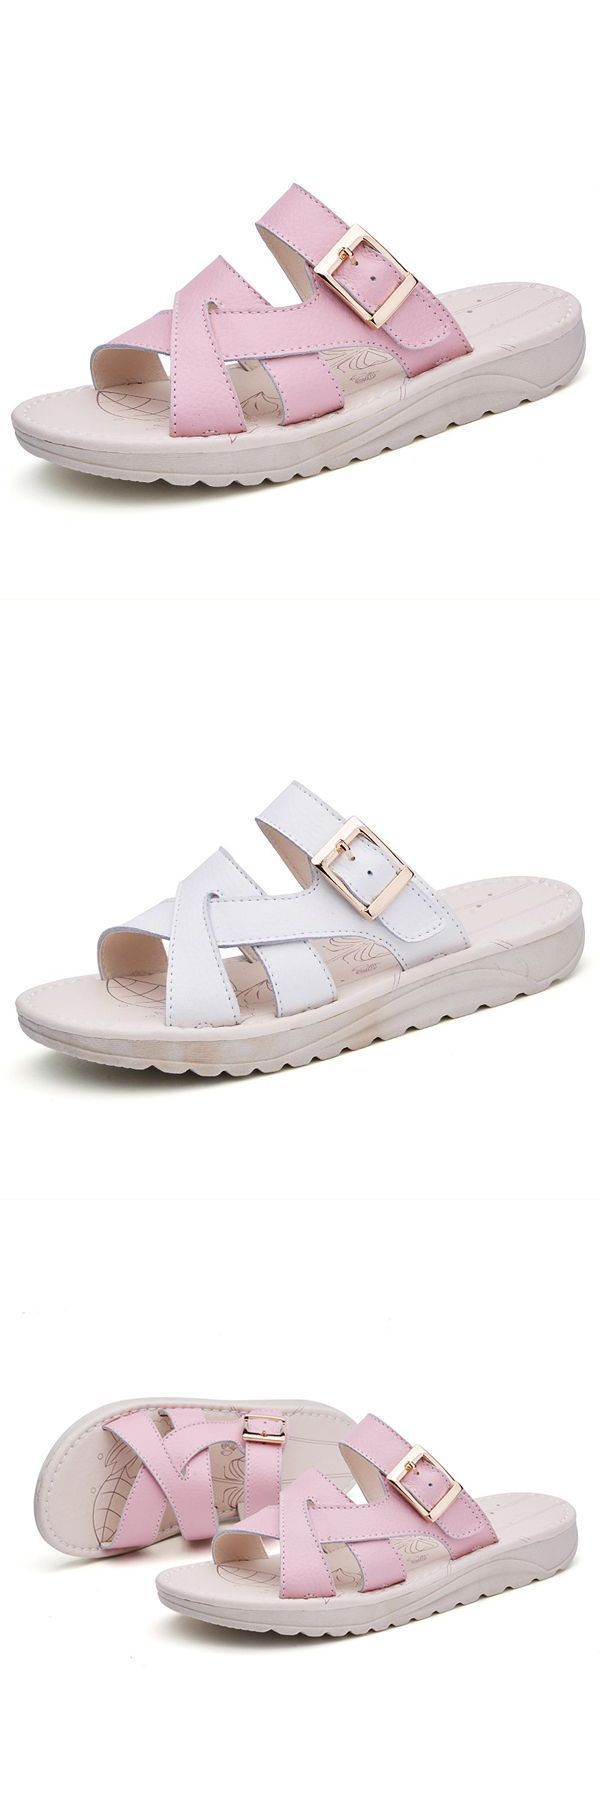 bandage buckle slip on wedge sandals soft leather slip on beach slipper sandals  sandals under $5